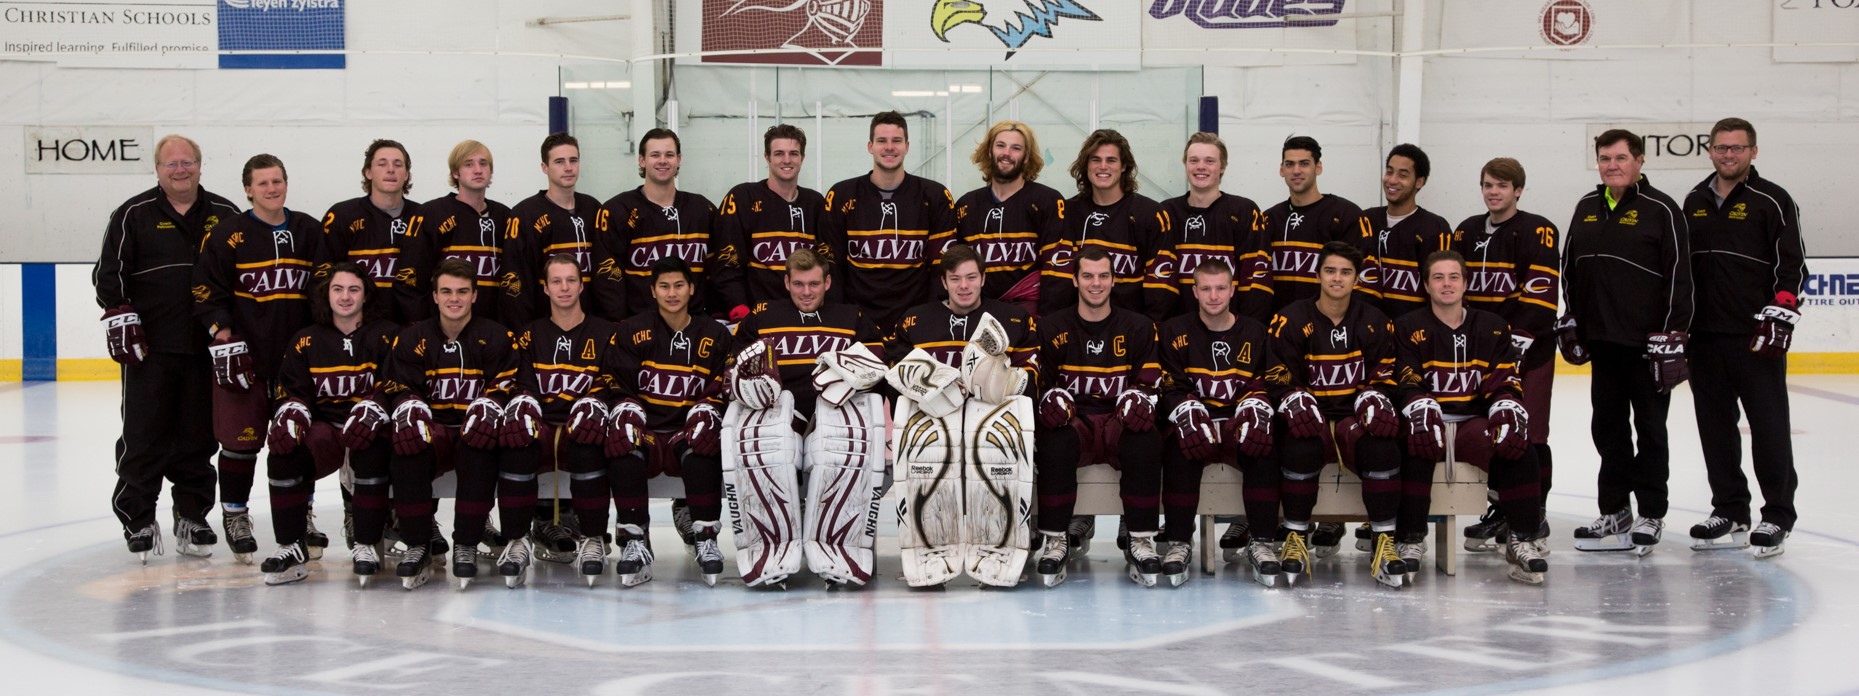 Calvin College professor will study hockey as Fulbright scholar